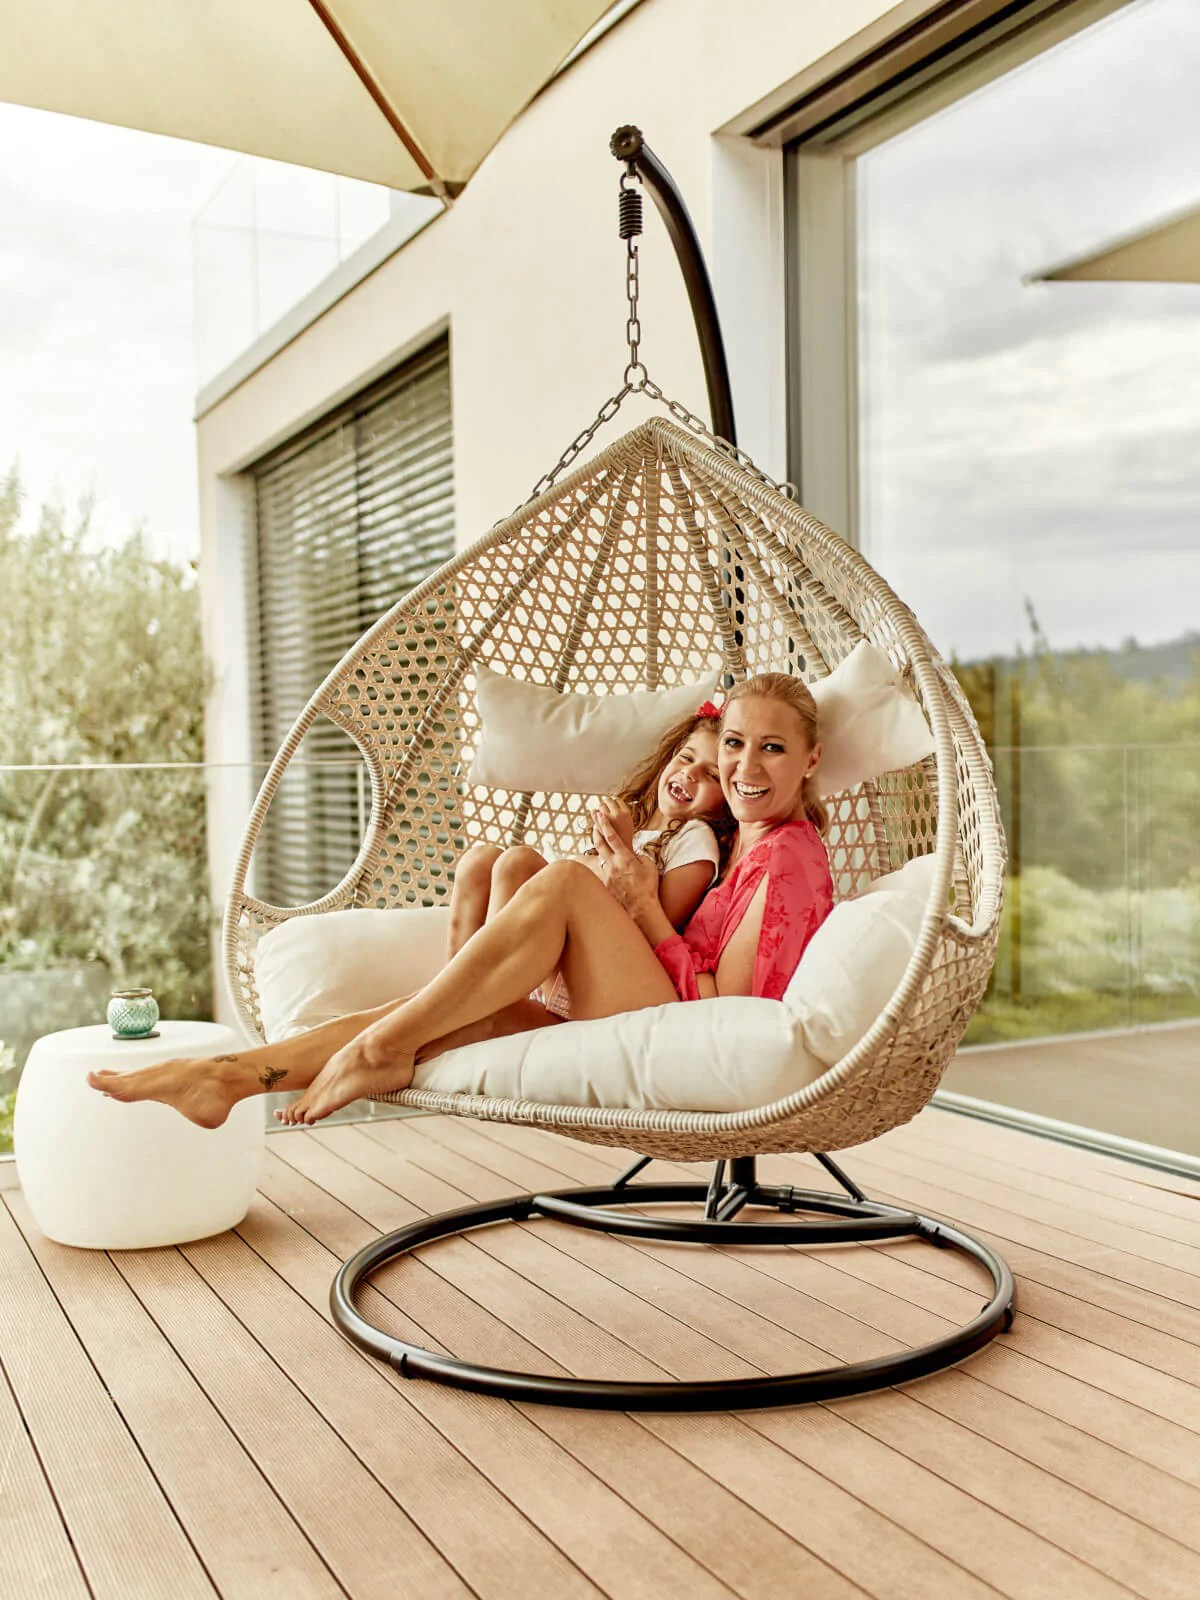 Luxus Twin Hängesessel Xxl Aus Polyrattan Indoor Outdoor